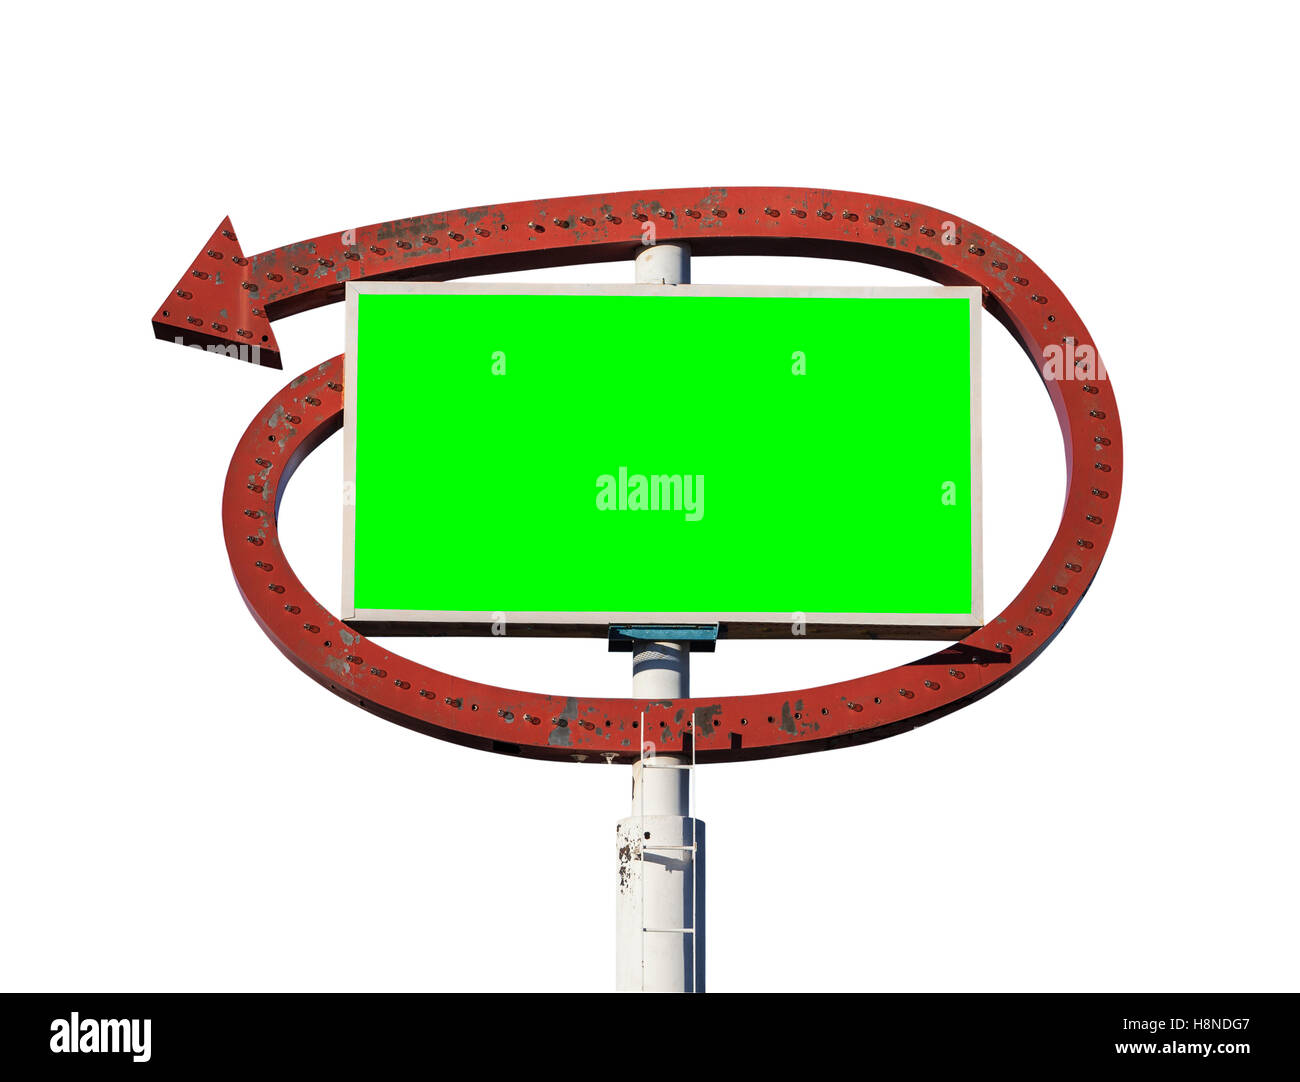 Vintage arrow sign with chroma key green insert isolated on white. - Stock Image